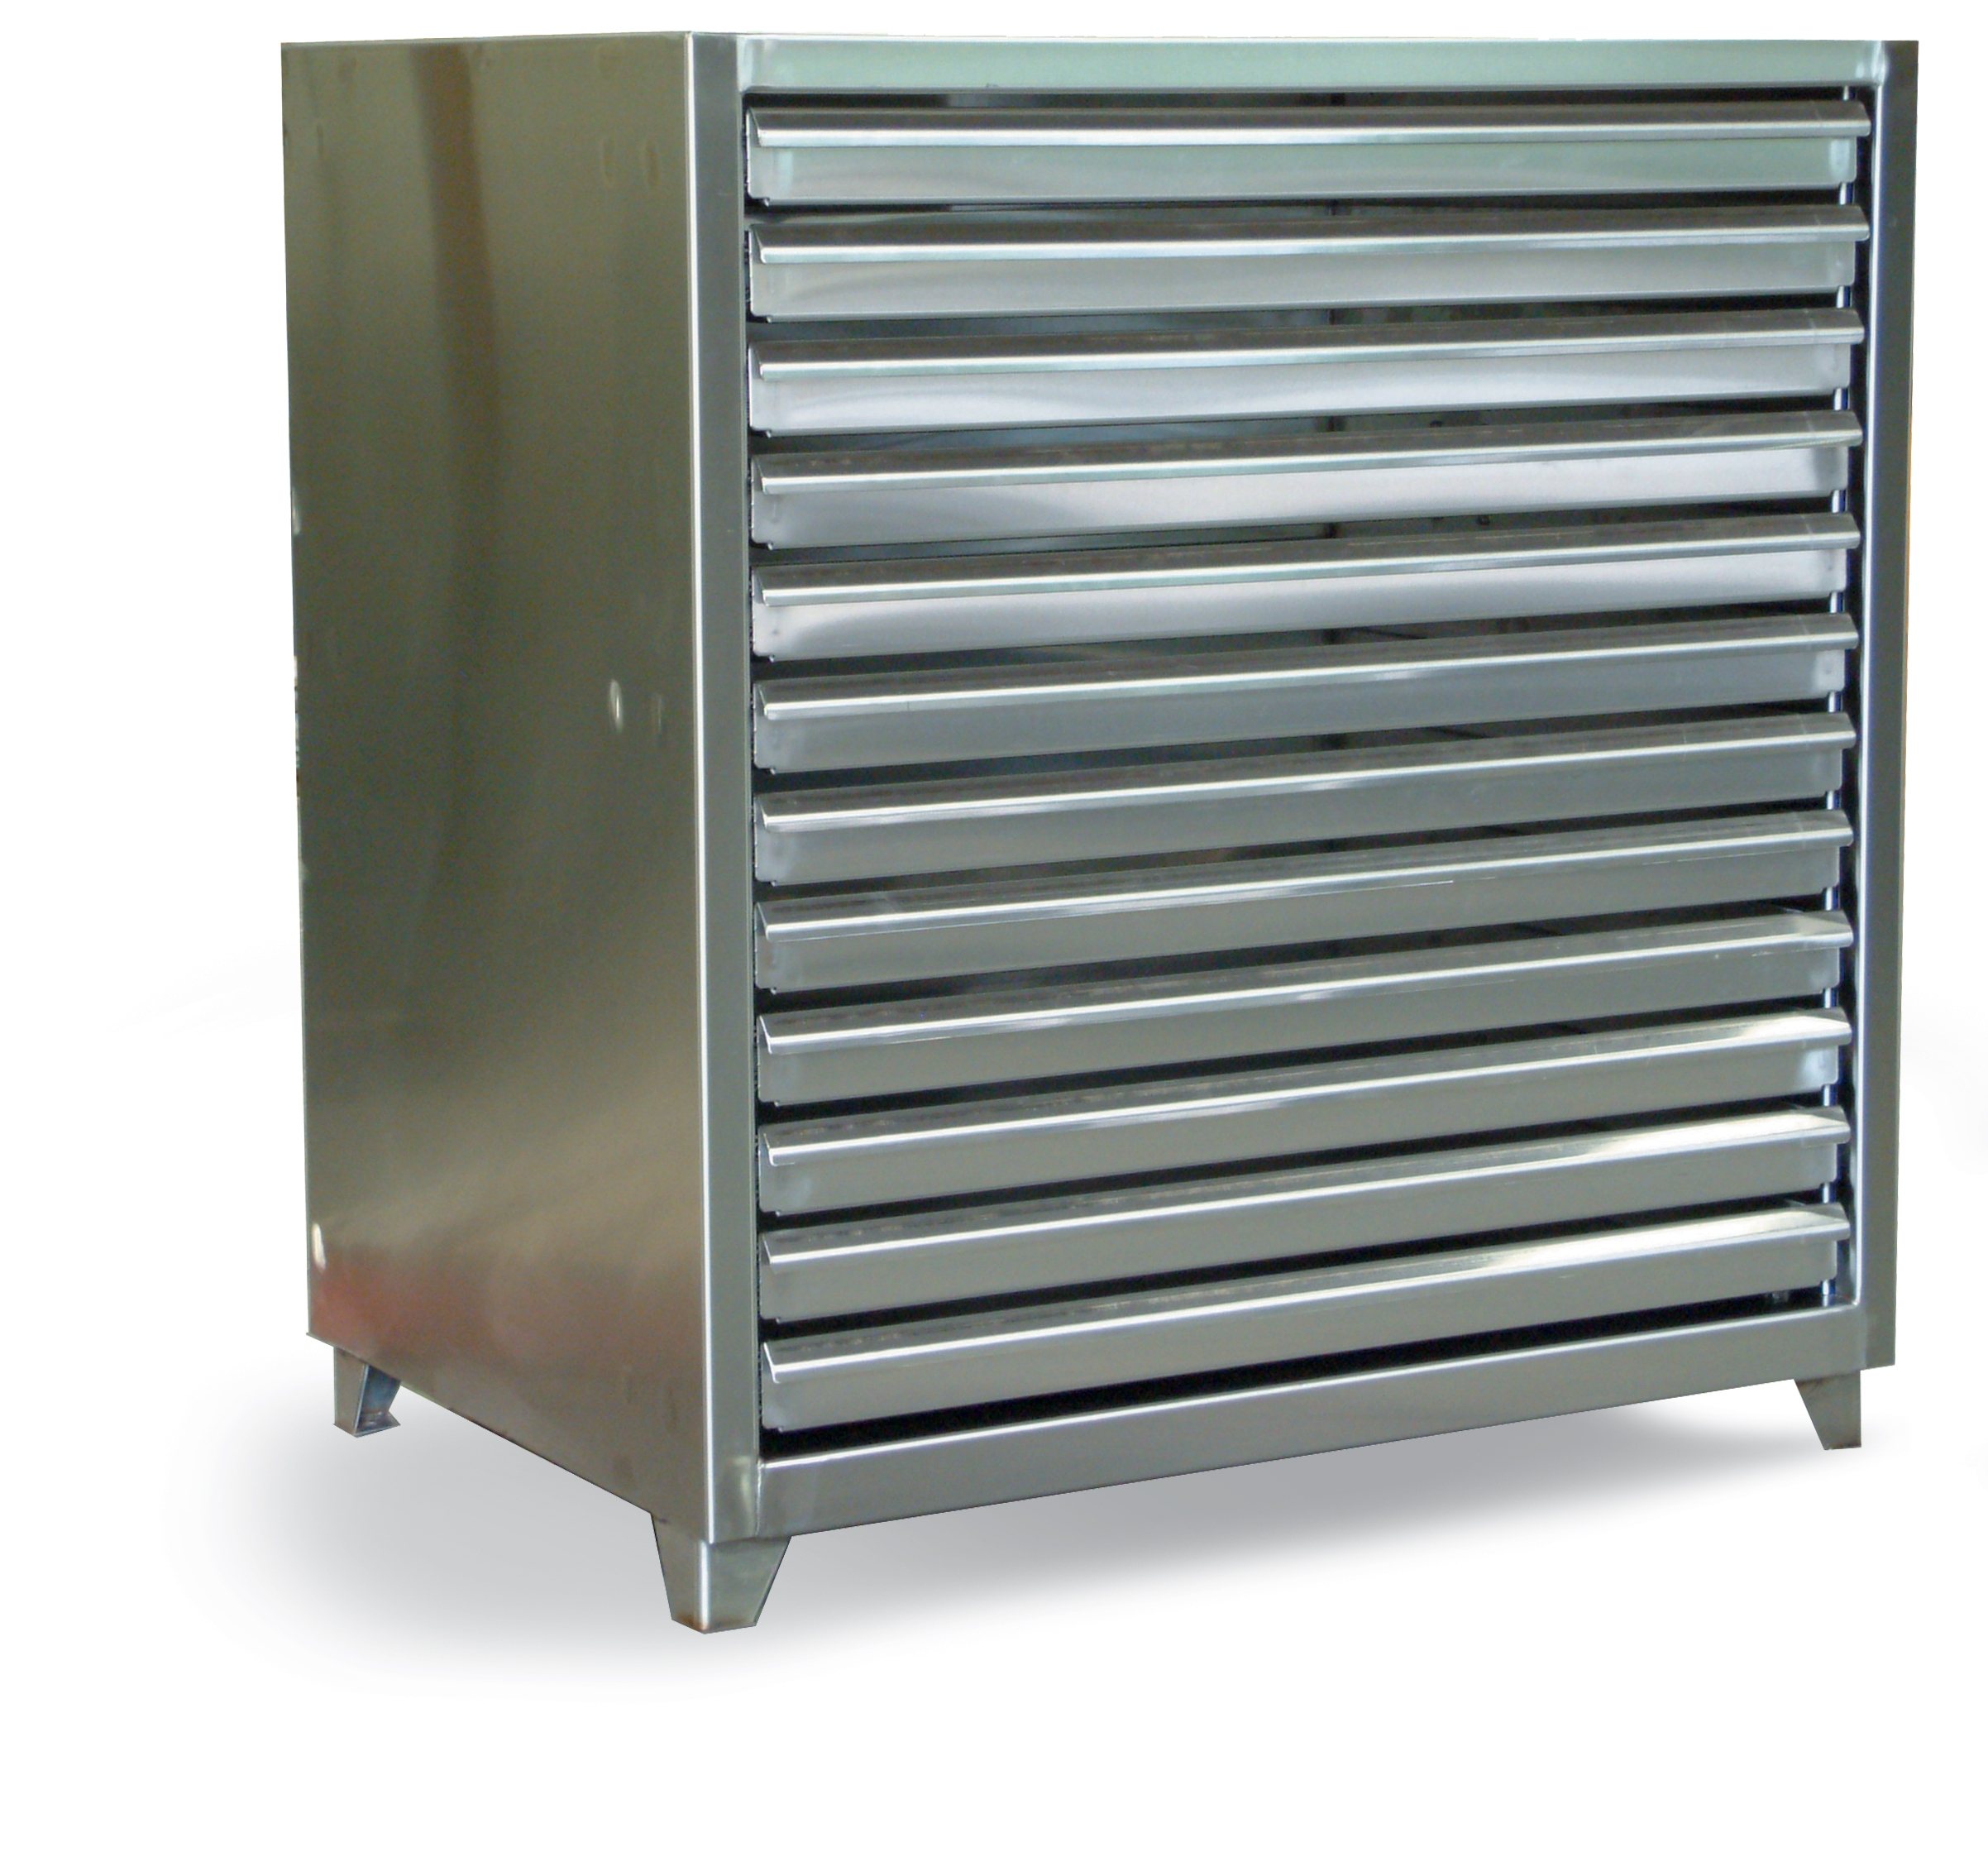 Storage Cabinets Stainless Steel